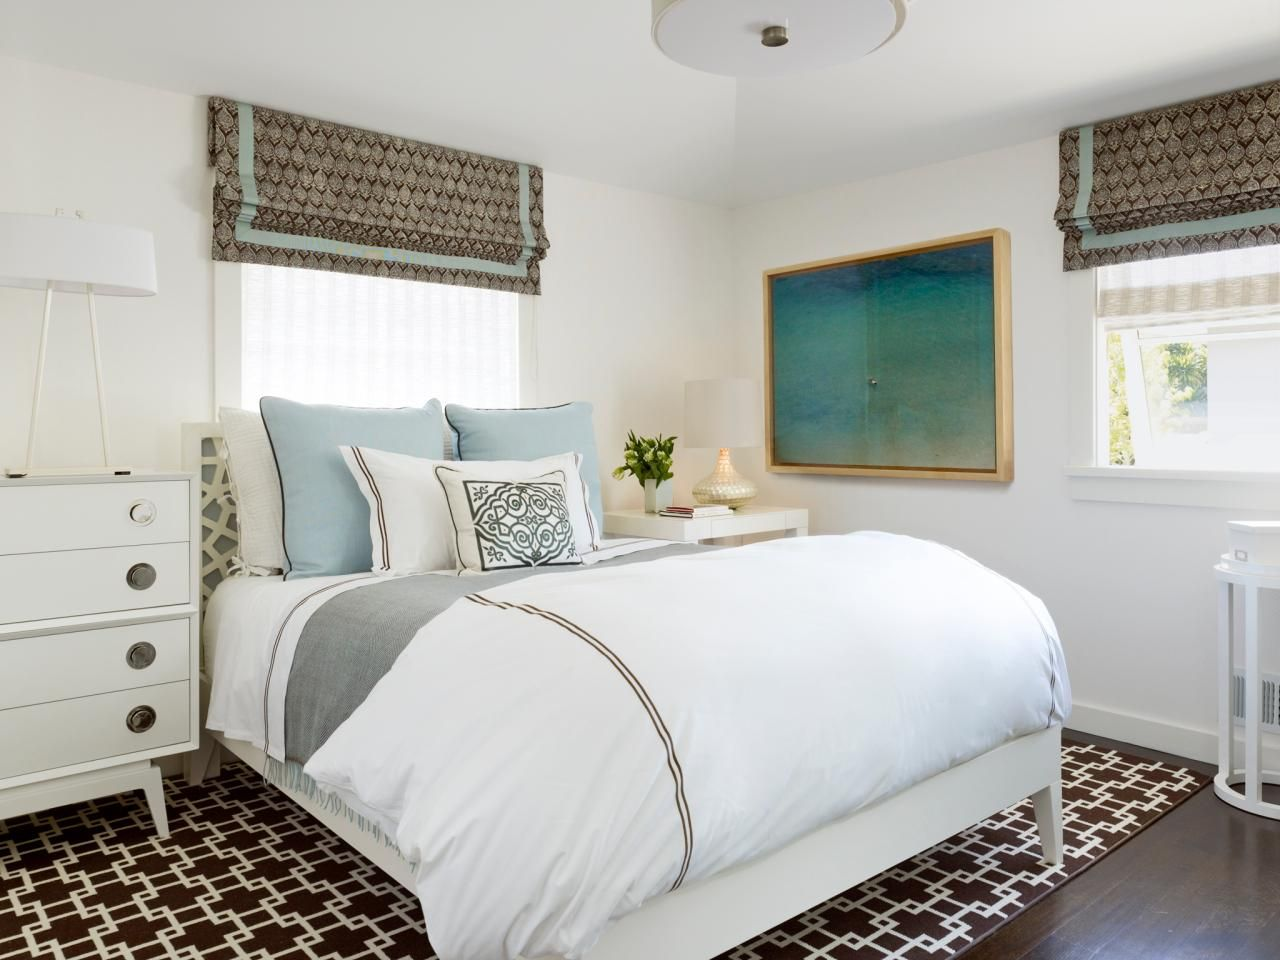 Designer Tricks for Living Large in a Small Bedroom | Bedrooms & Bedroom Decorating Ideas | HGTV